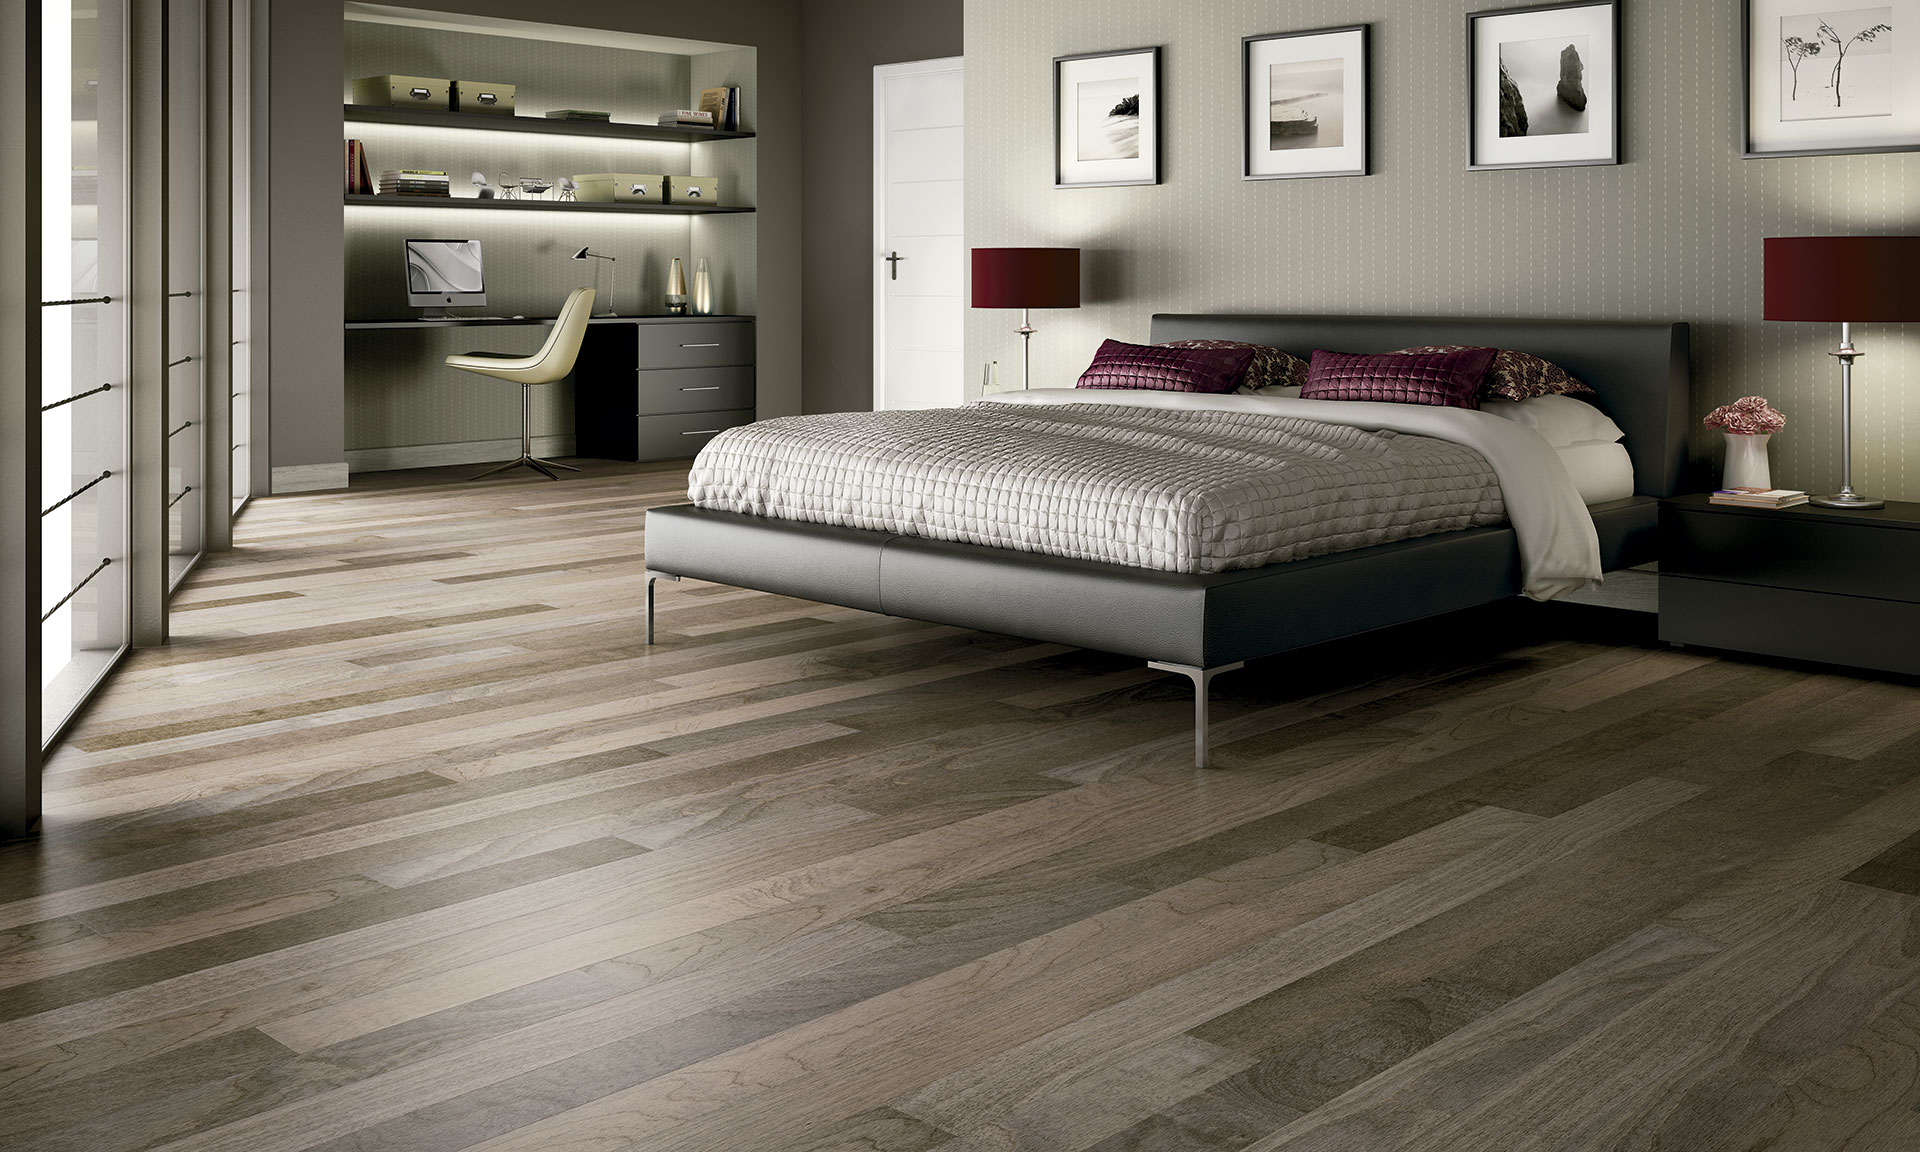 Cochrane Floors - Fumed White Oak